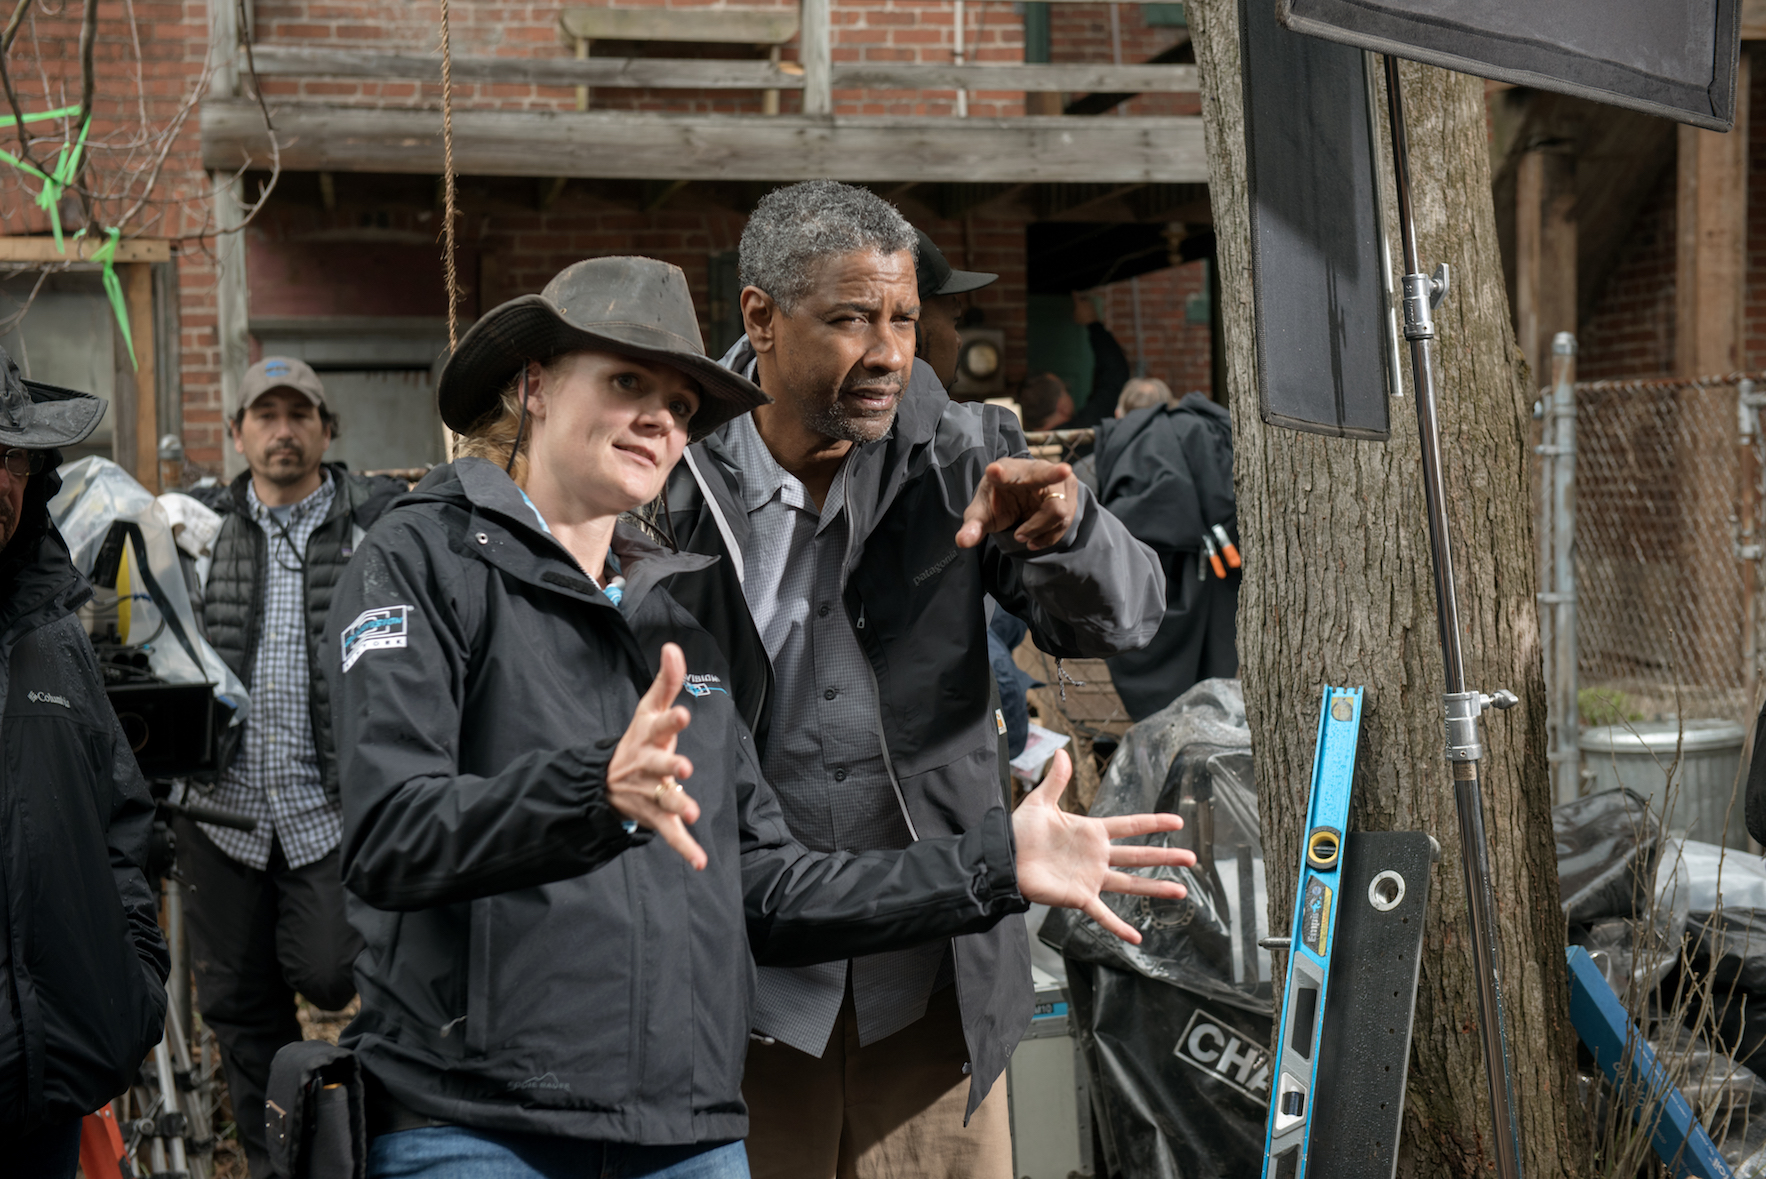 Charlotte Bruus Christensen, Denzel Washington - Fences.jpeg